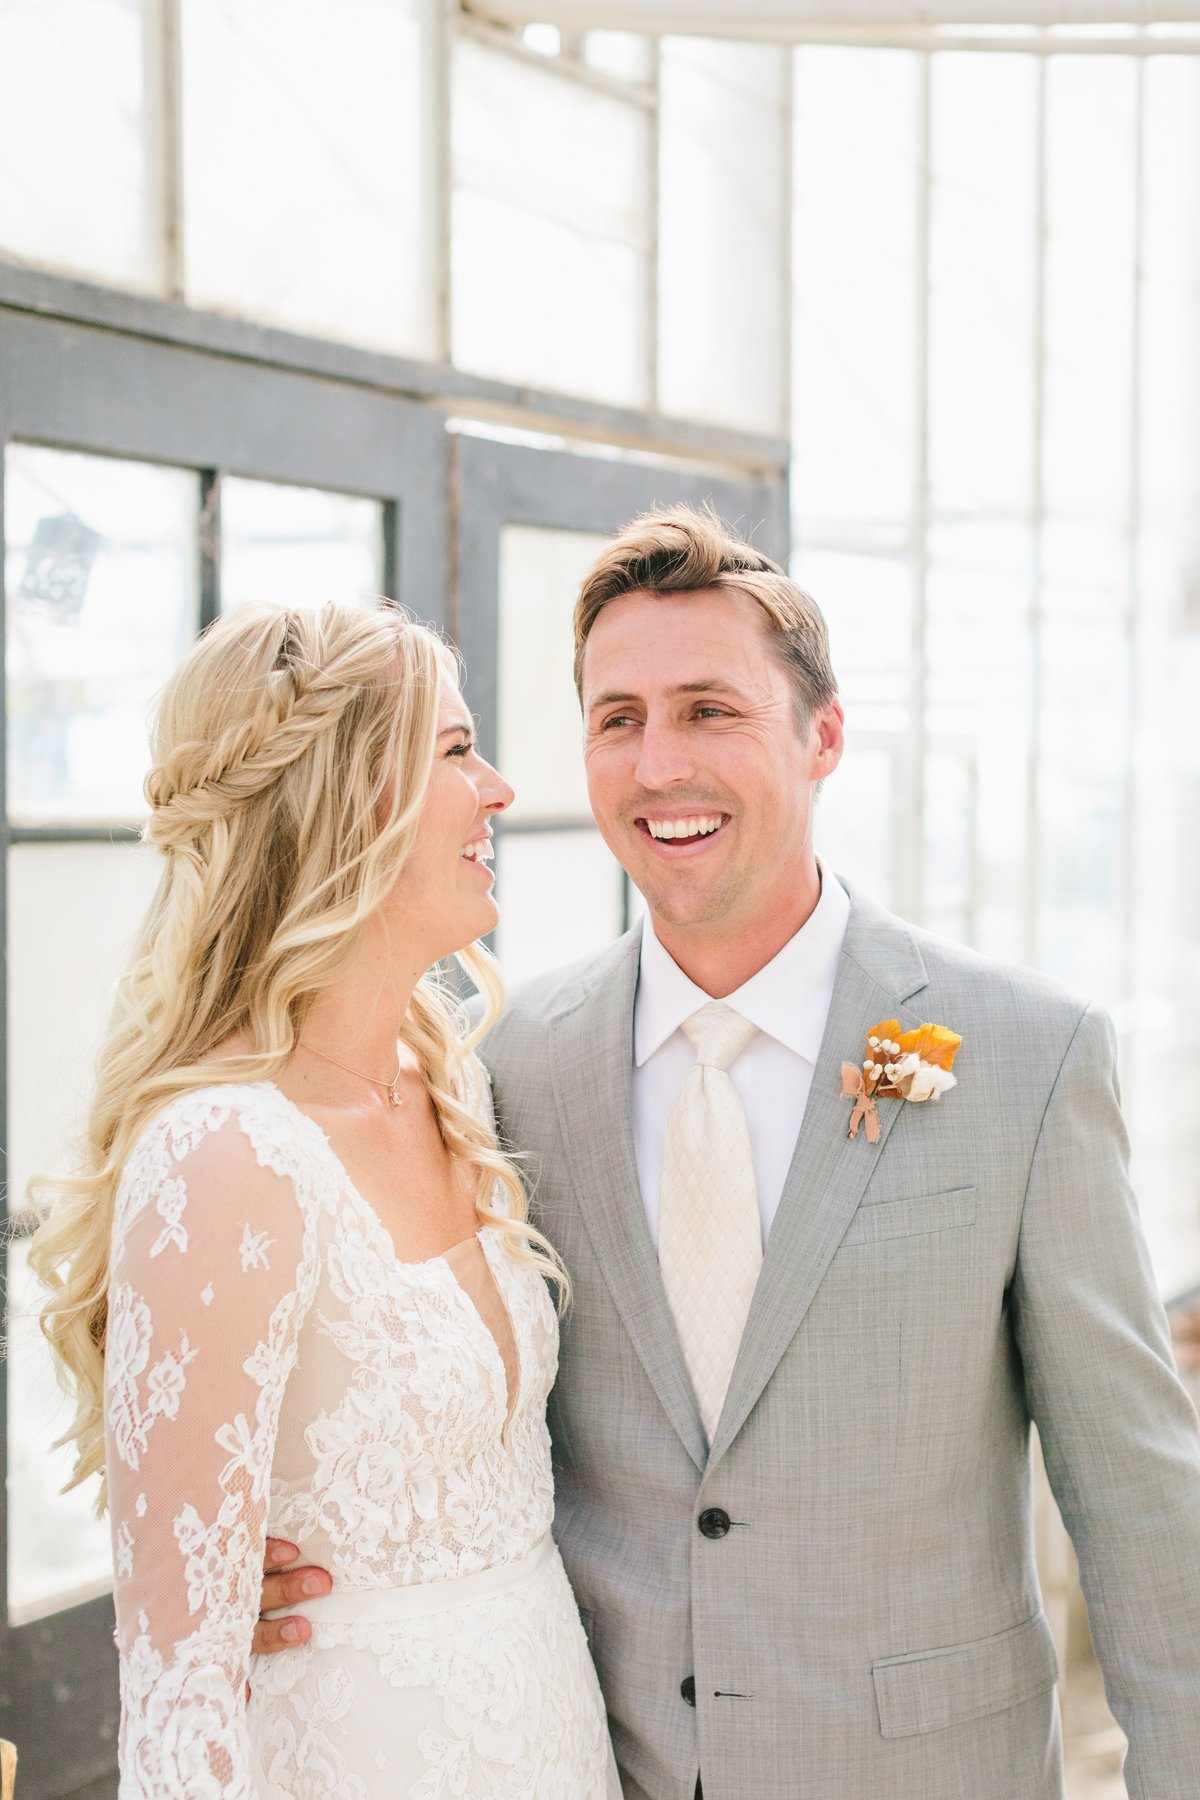 Best California Wedding Photographer-Jodee Debes Photography-127